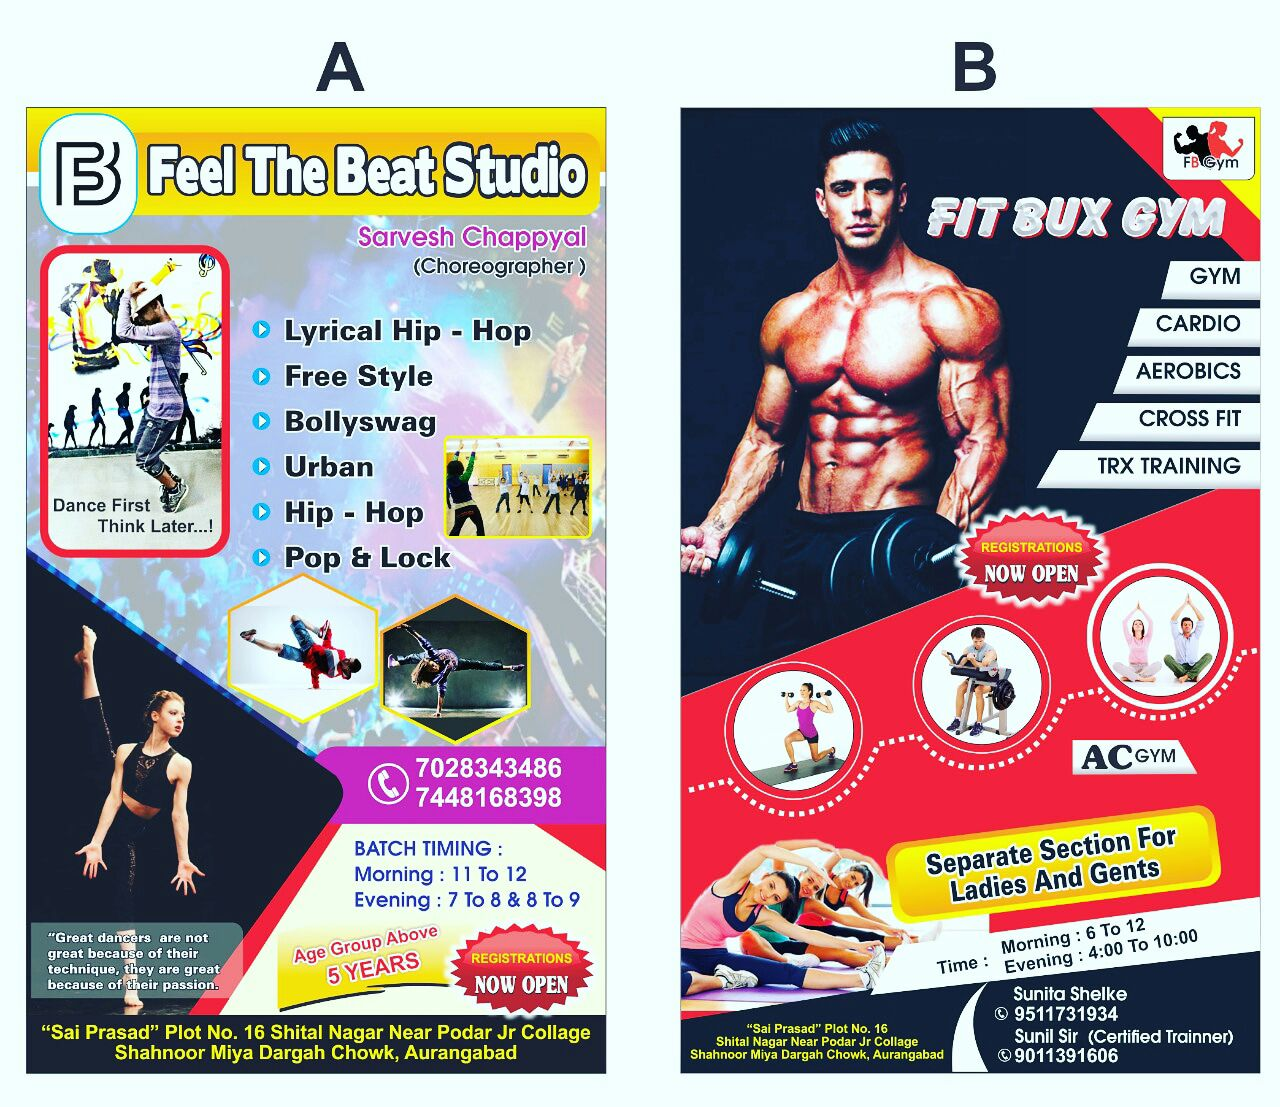 Fit Bux Gym & Feel The Beat Studio_image1